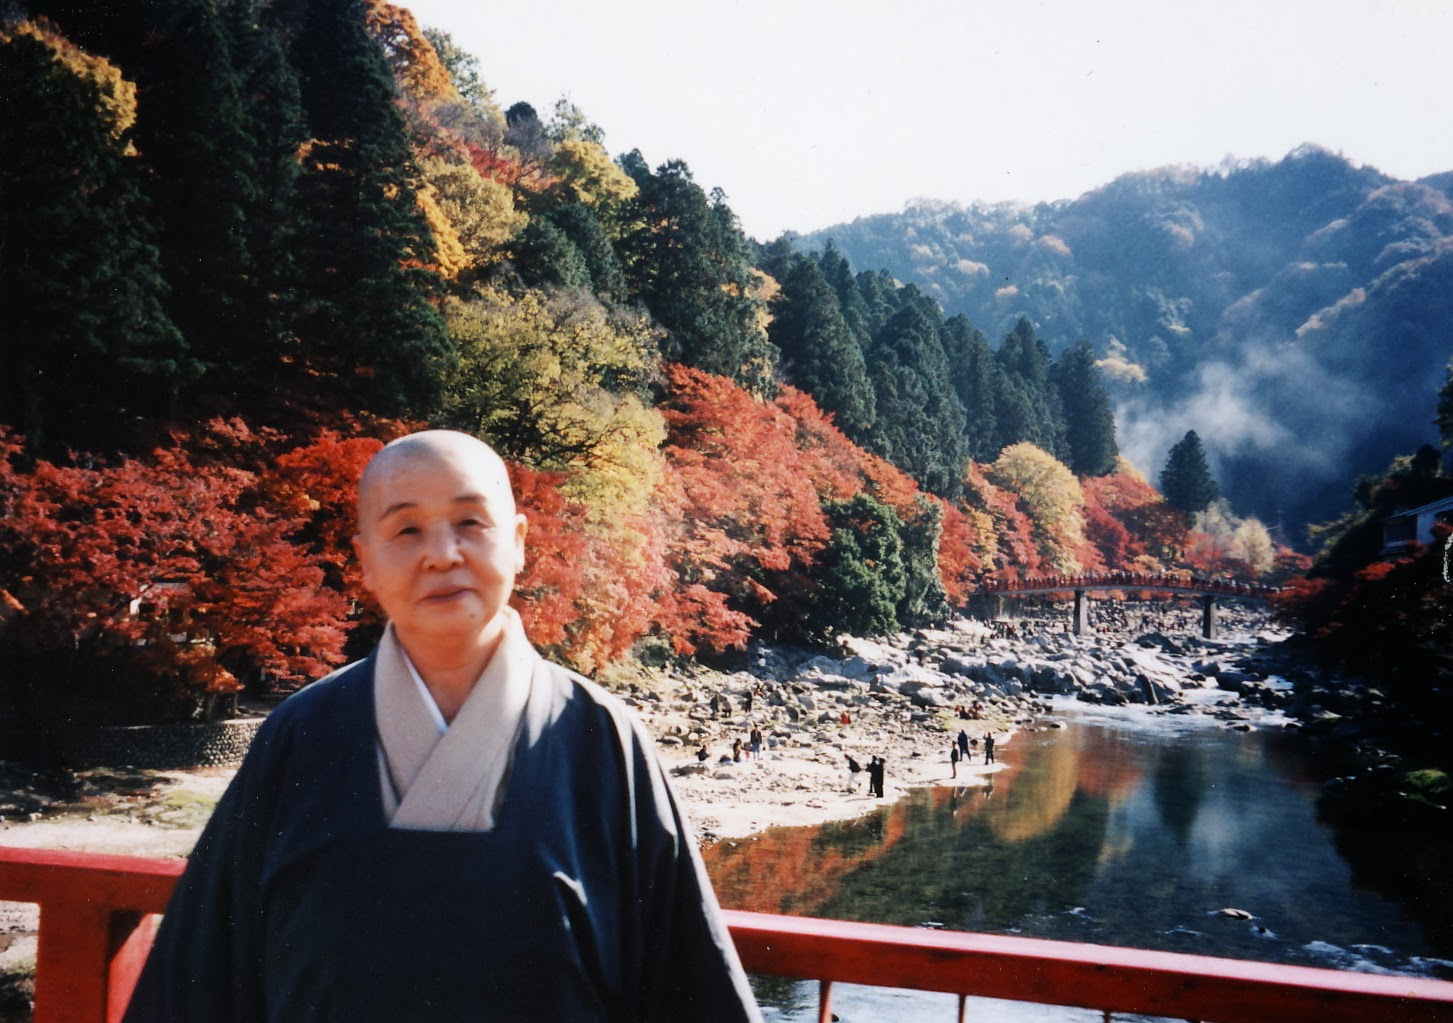 west ossipee buddhist single women A link page about women in buddhism in dharmasalanet theravada buddhist writings by women a collection of writings about meditation, buddhism and the path.